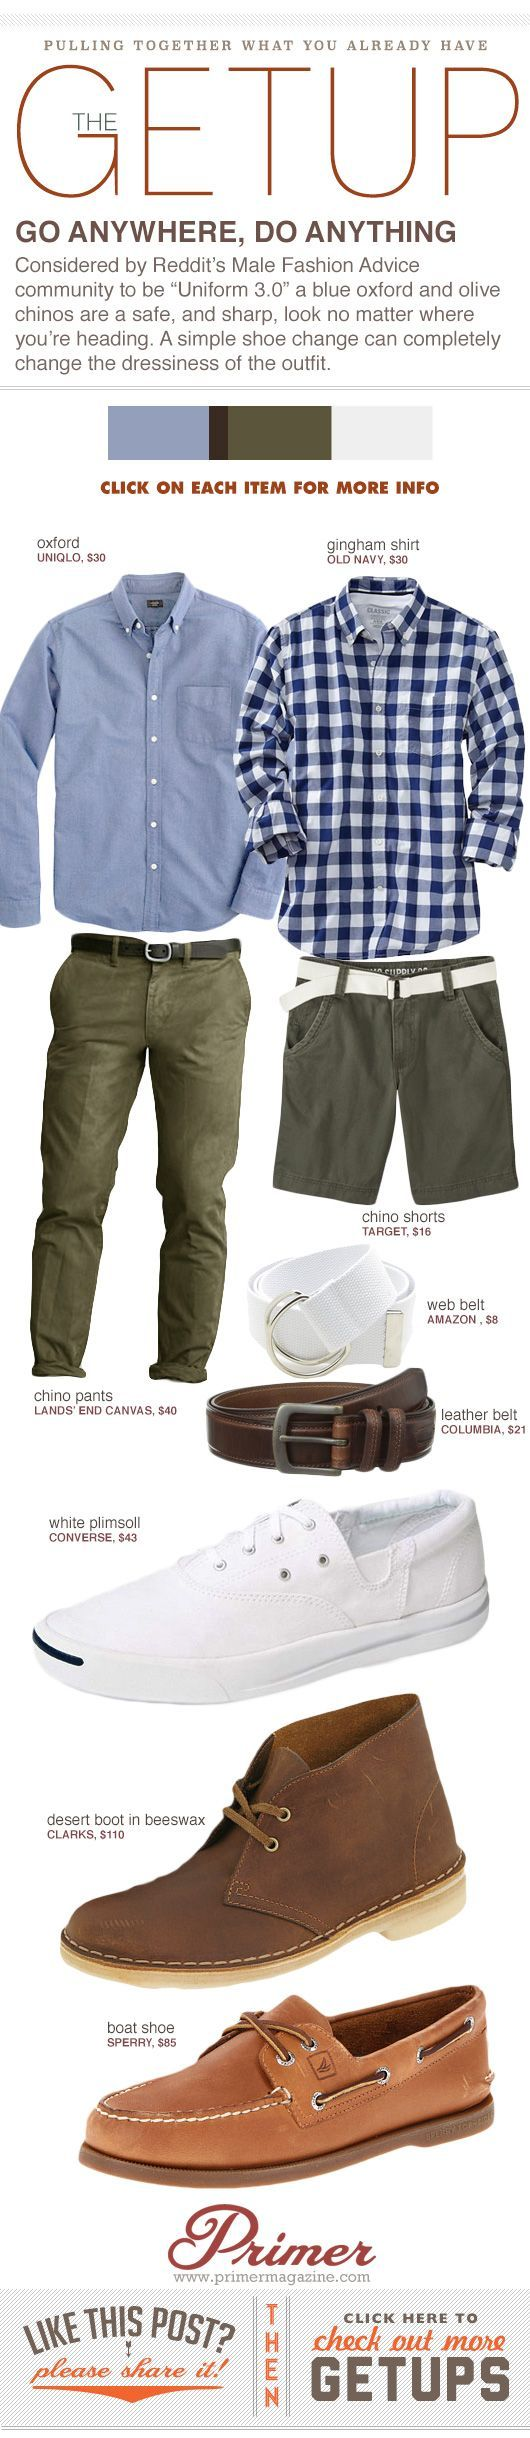 """Considered by Reddit's Male Fashion Advice community to be """"Uniform 3.0"""" a blue oxford and olive chinos are a safe, and sharp, look no matter where you're heading. A simple shoe change can completely change the dressiness of the outfit.:"""